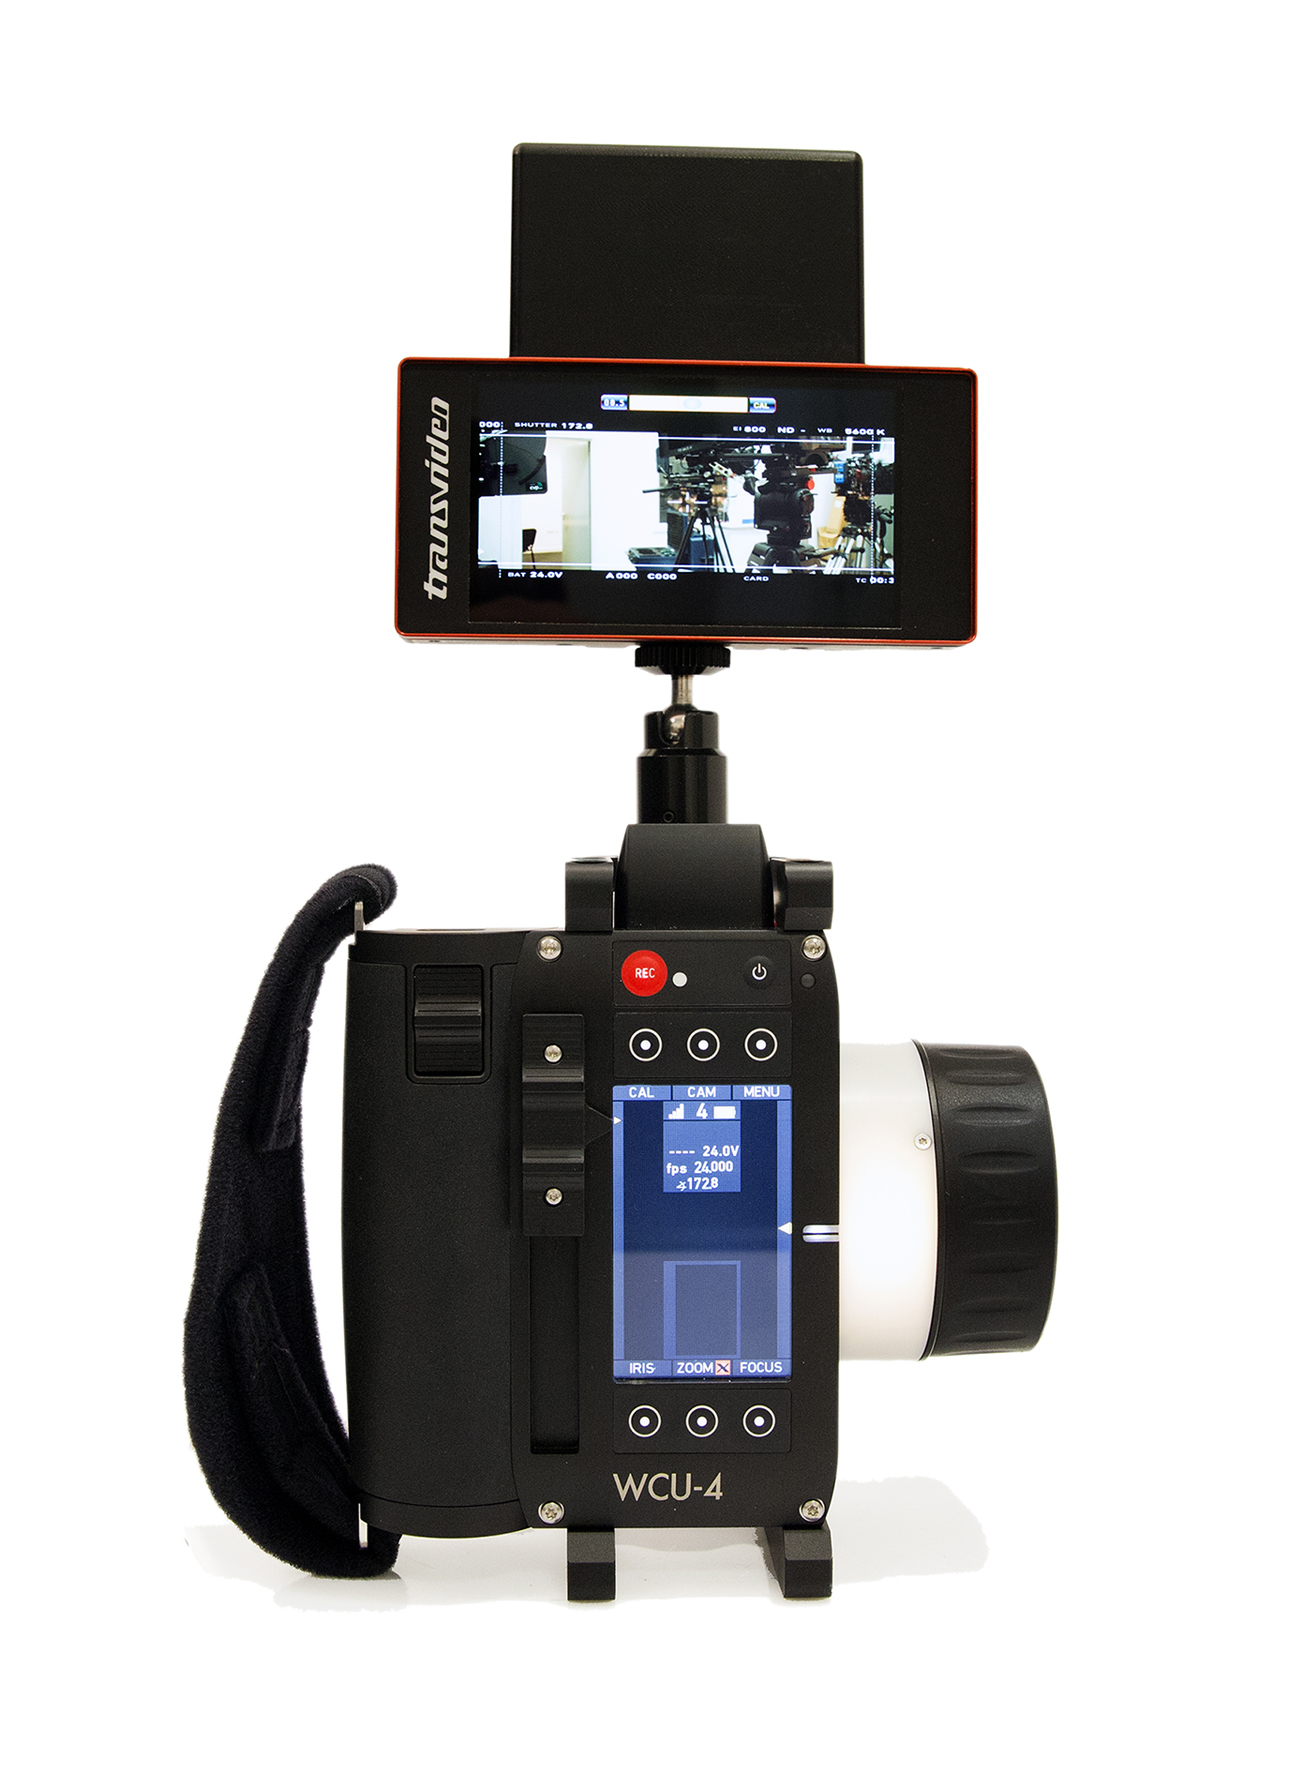 The-Transvideo-StarliteRF-monitor-recorder-mounted-on-the-ARRI-WCU-4-controller